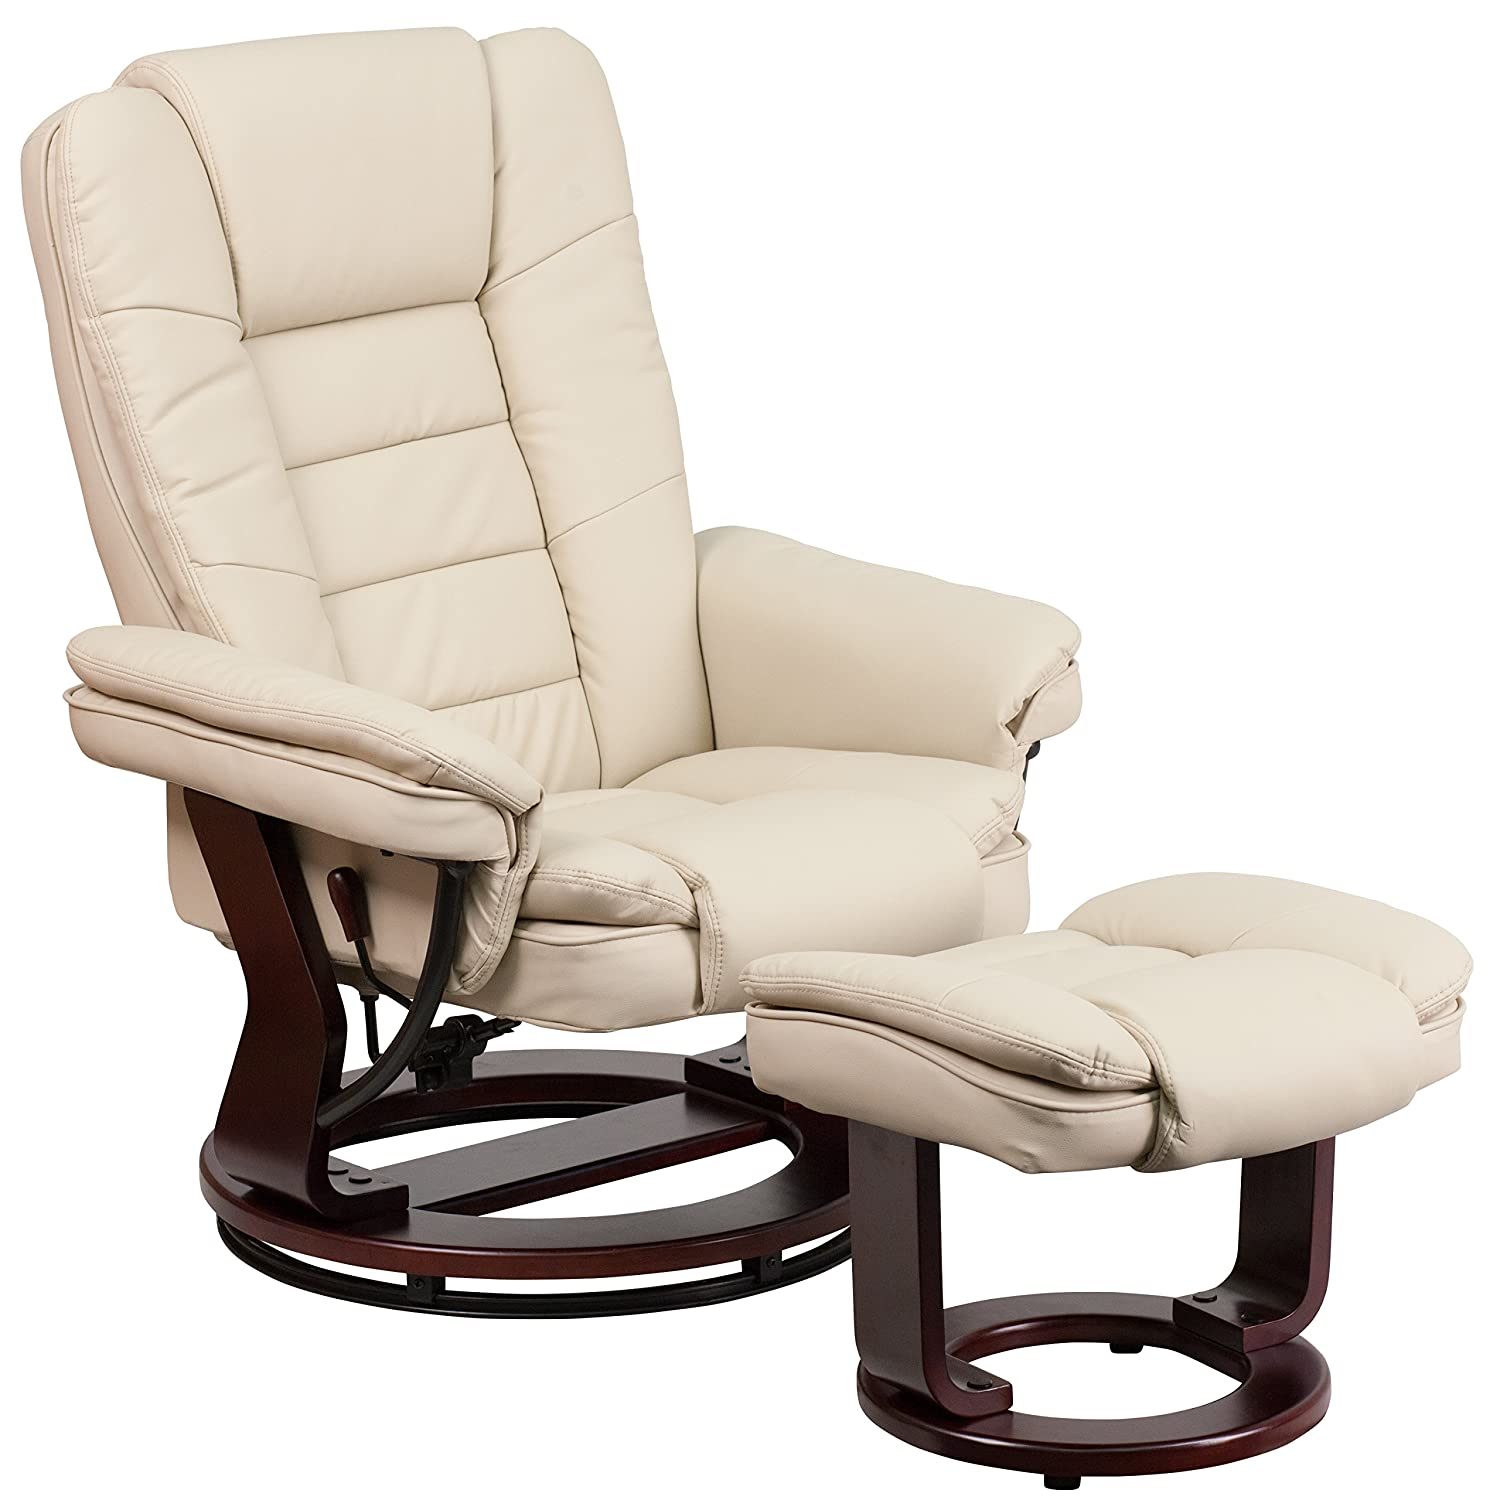 Flash Furniture BT 7818 BGE GG Contemporary Beige Leather Recliner And  Ottoman With Swiveling Mahogany Wood Base